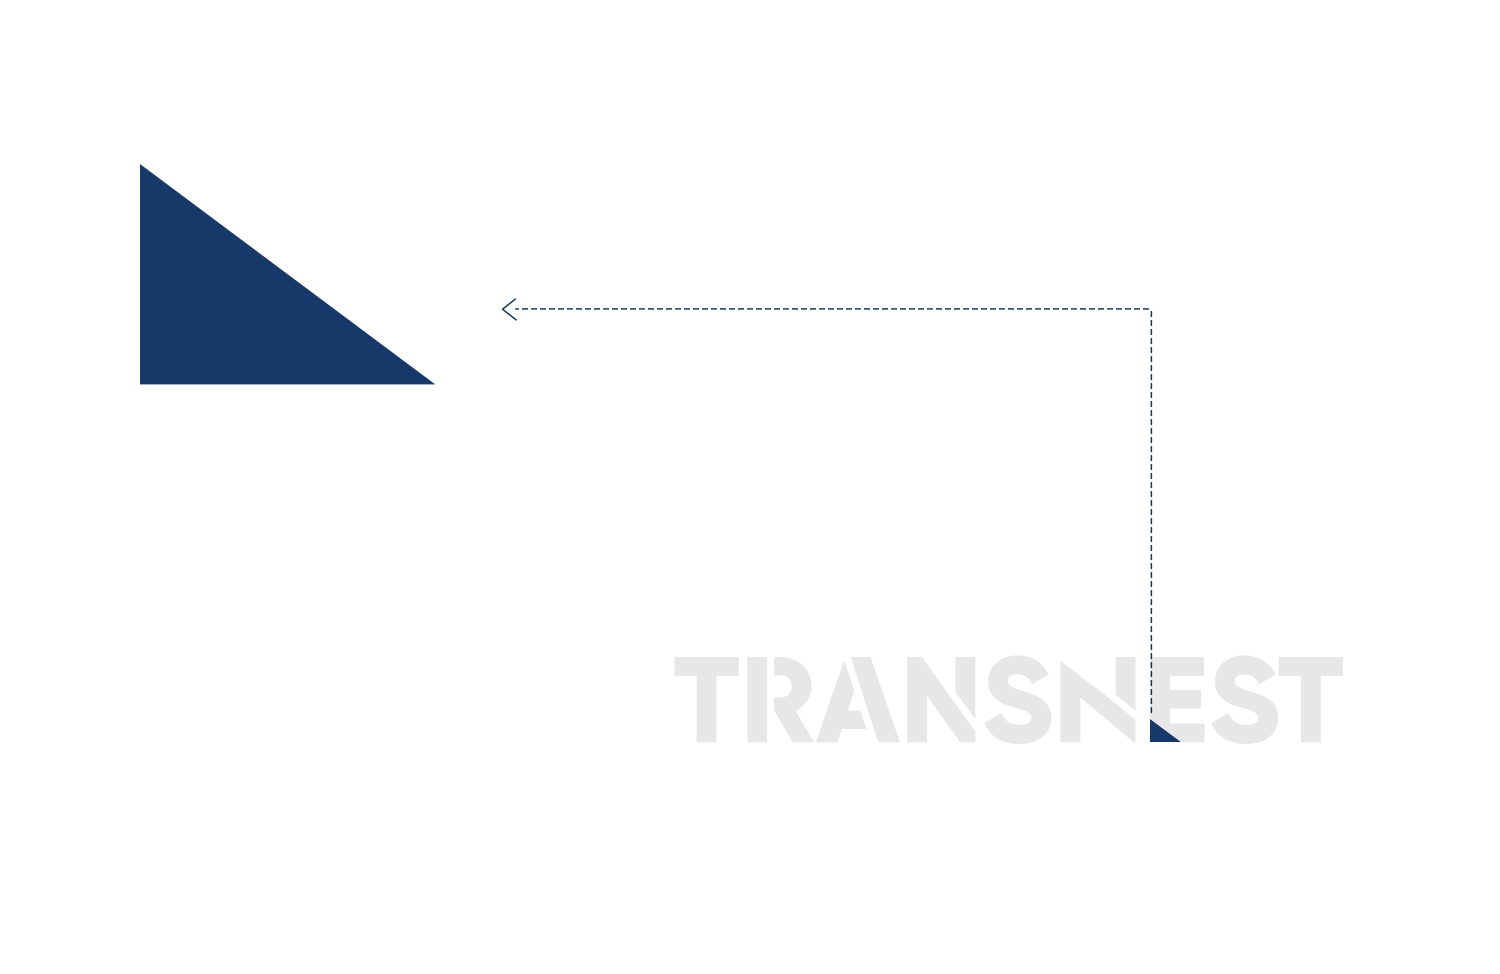 A triangle that used in the brand identity